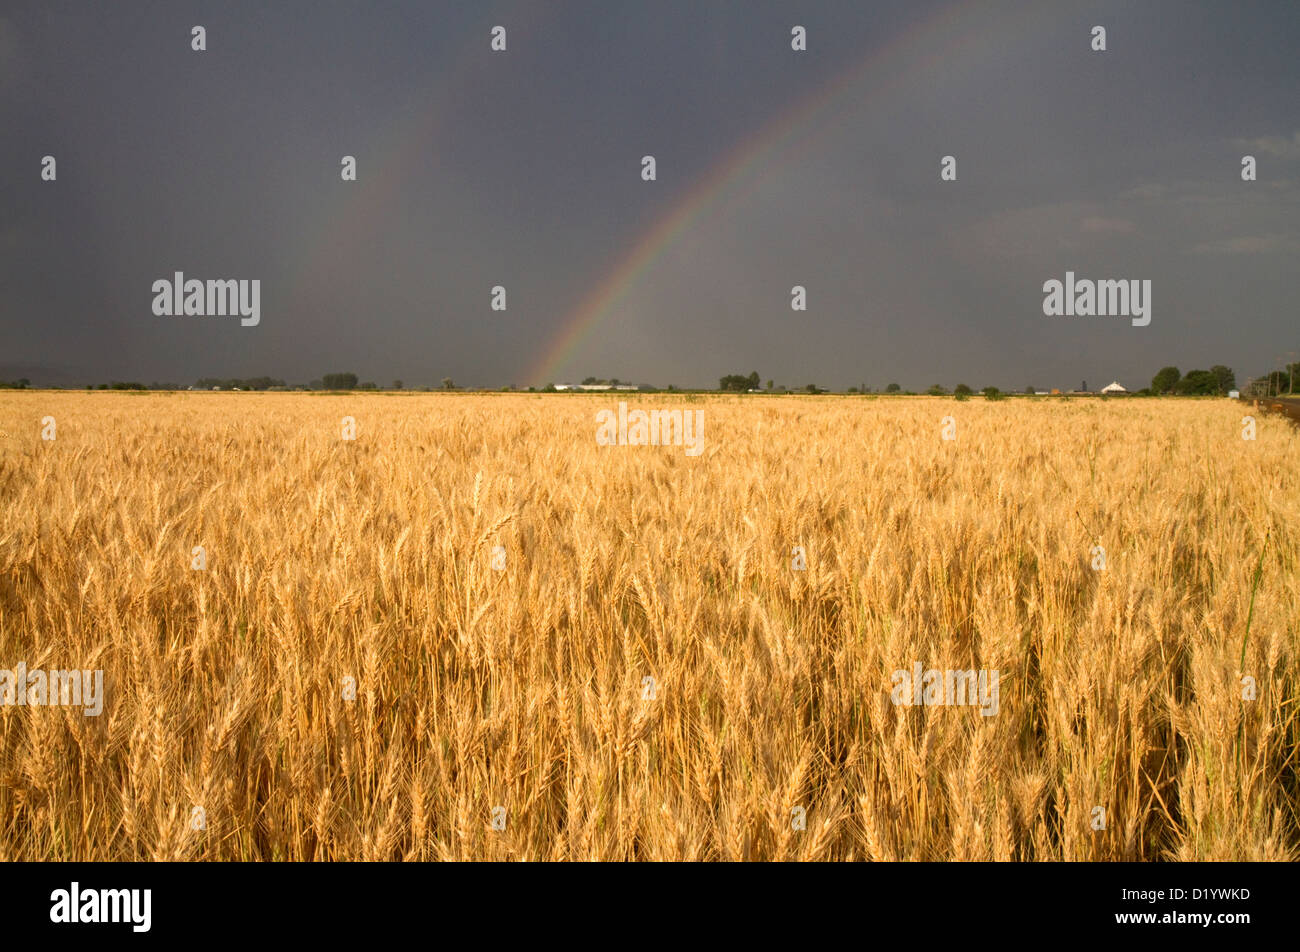 Golden wheat field with rainbow in the sky, Payette County, Idaho, USA. - Stock Image